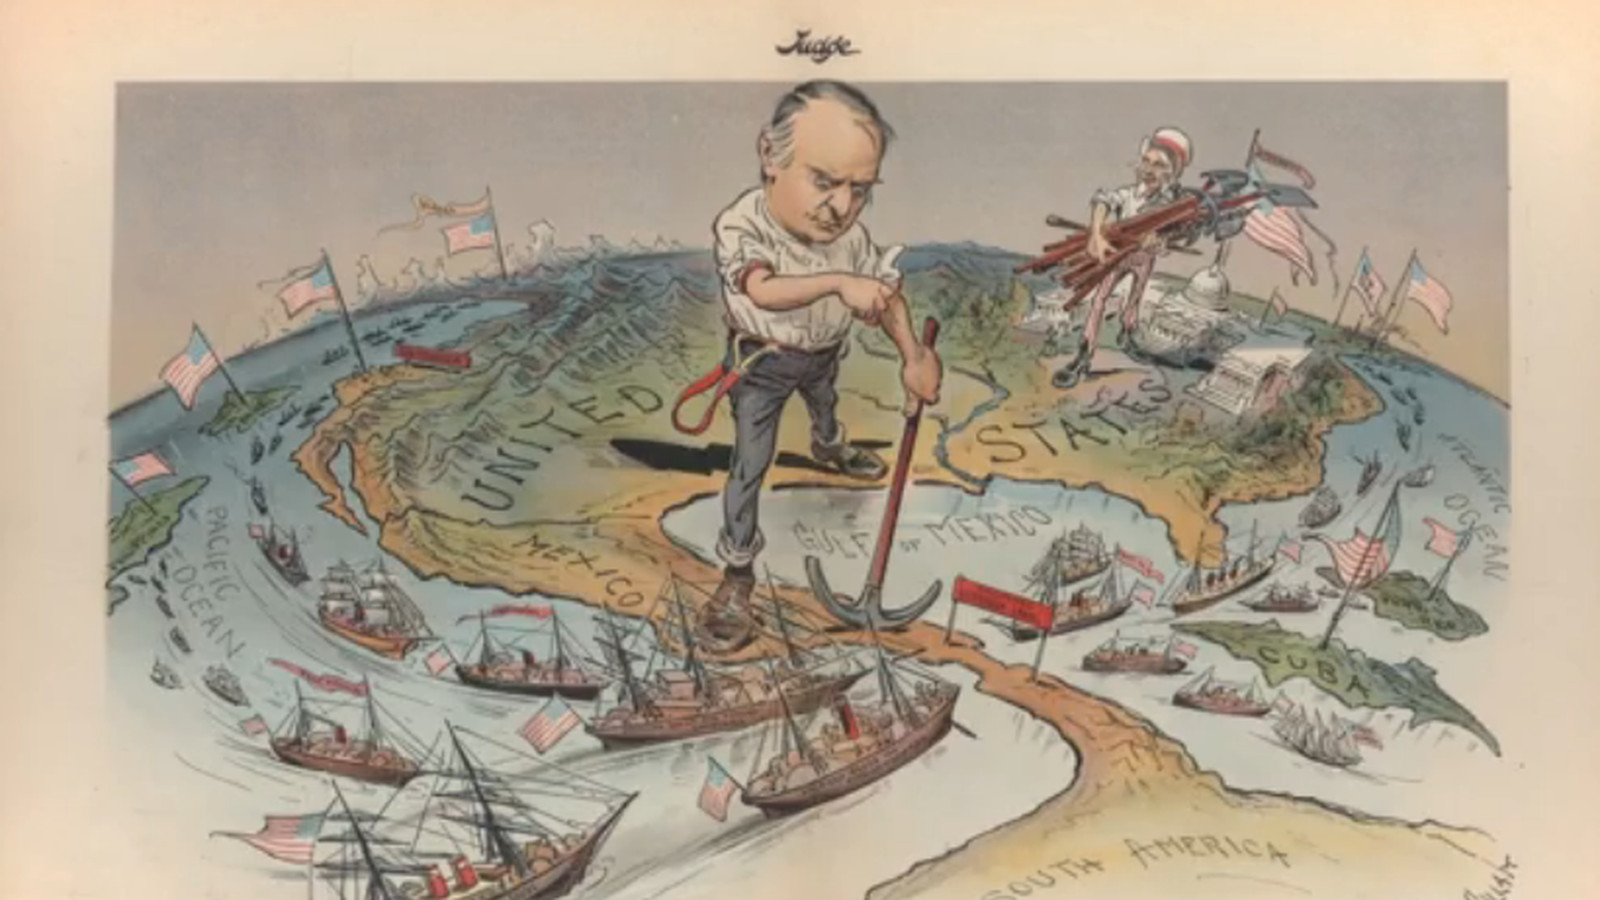 an analysis of the imperialism and expansion in 20th century In historical contexts, new imperialism characterizes a period of colonial expansion by european powers, the united states, and japan during the late 19th and early 20th centuries the period featured an unprecedented pursuit of overseas territorial acquisitions.